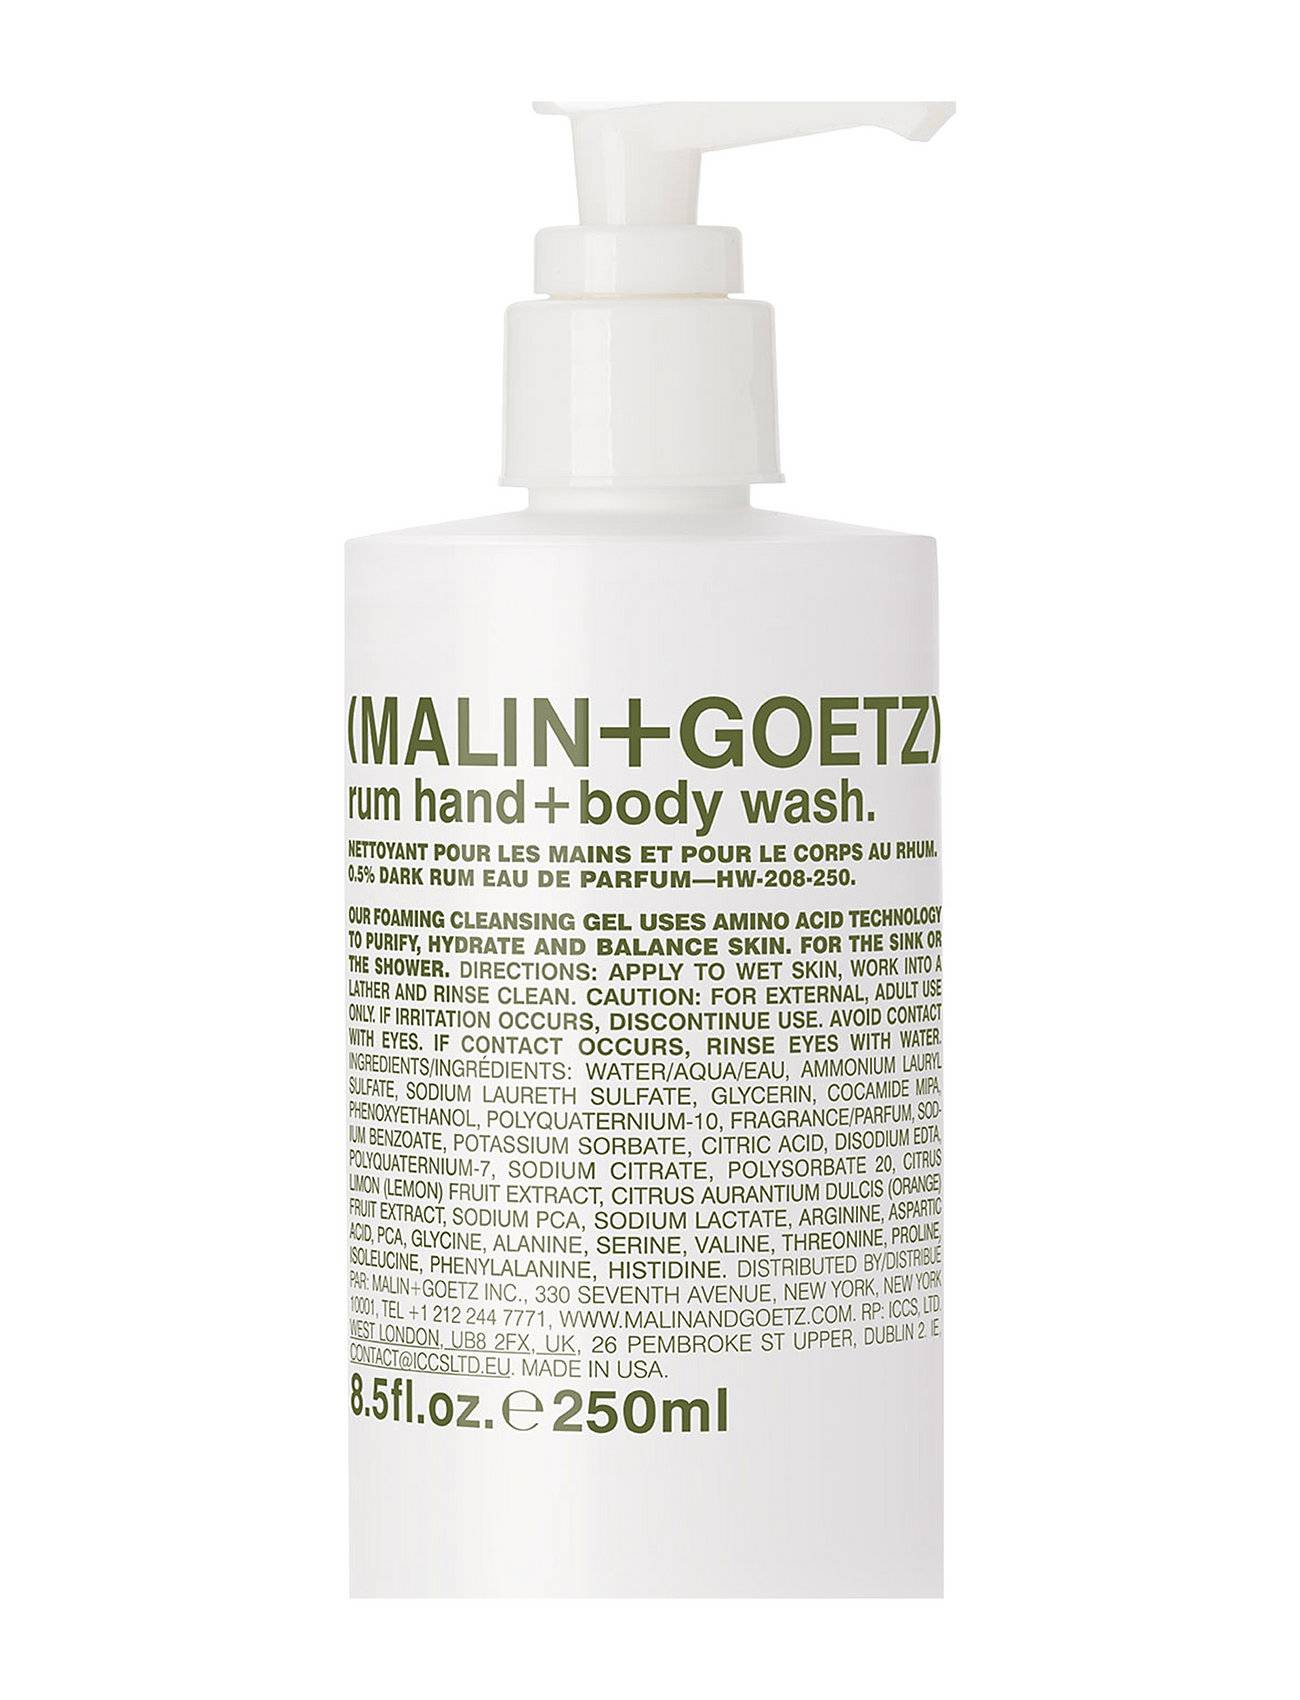 Malin+Goetz Rum Hand + Body Wash Beauty MEN Skin Care Body Shower Gel Nude Malin+Goetz